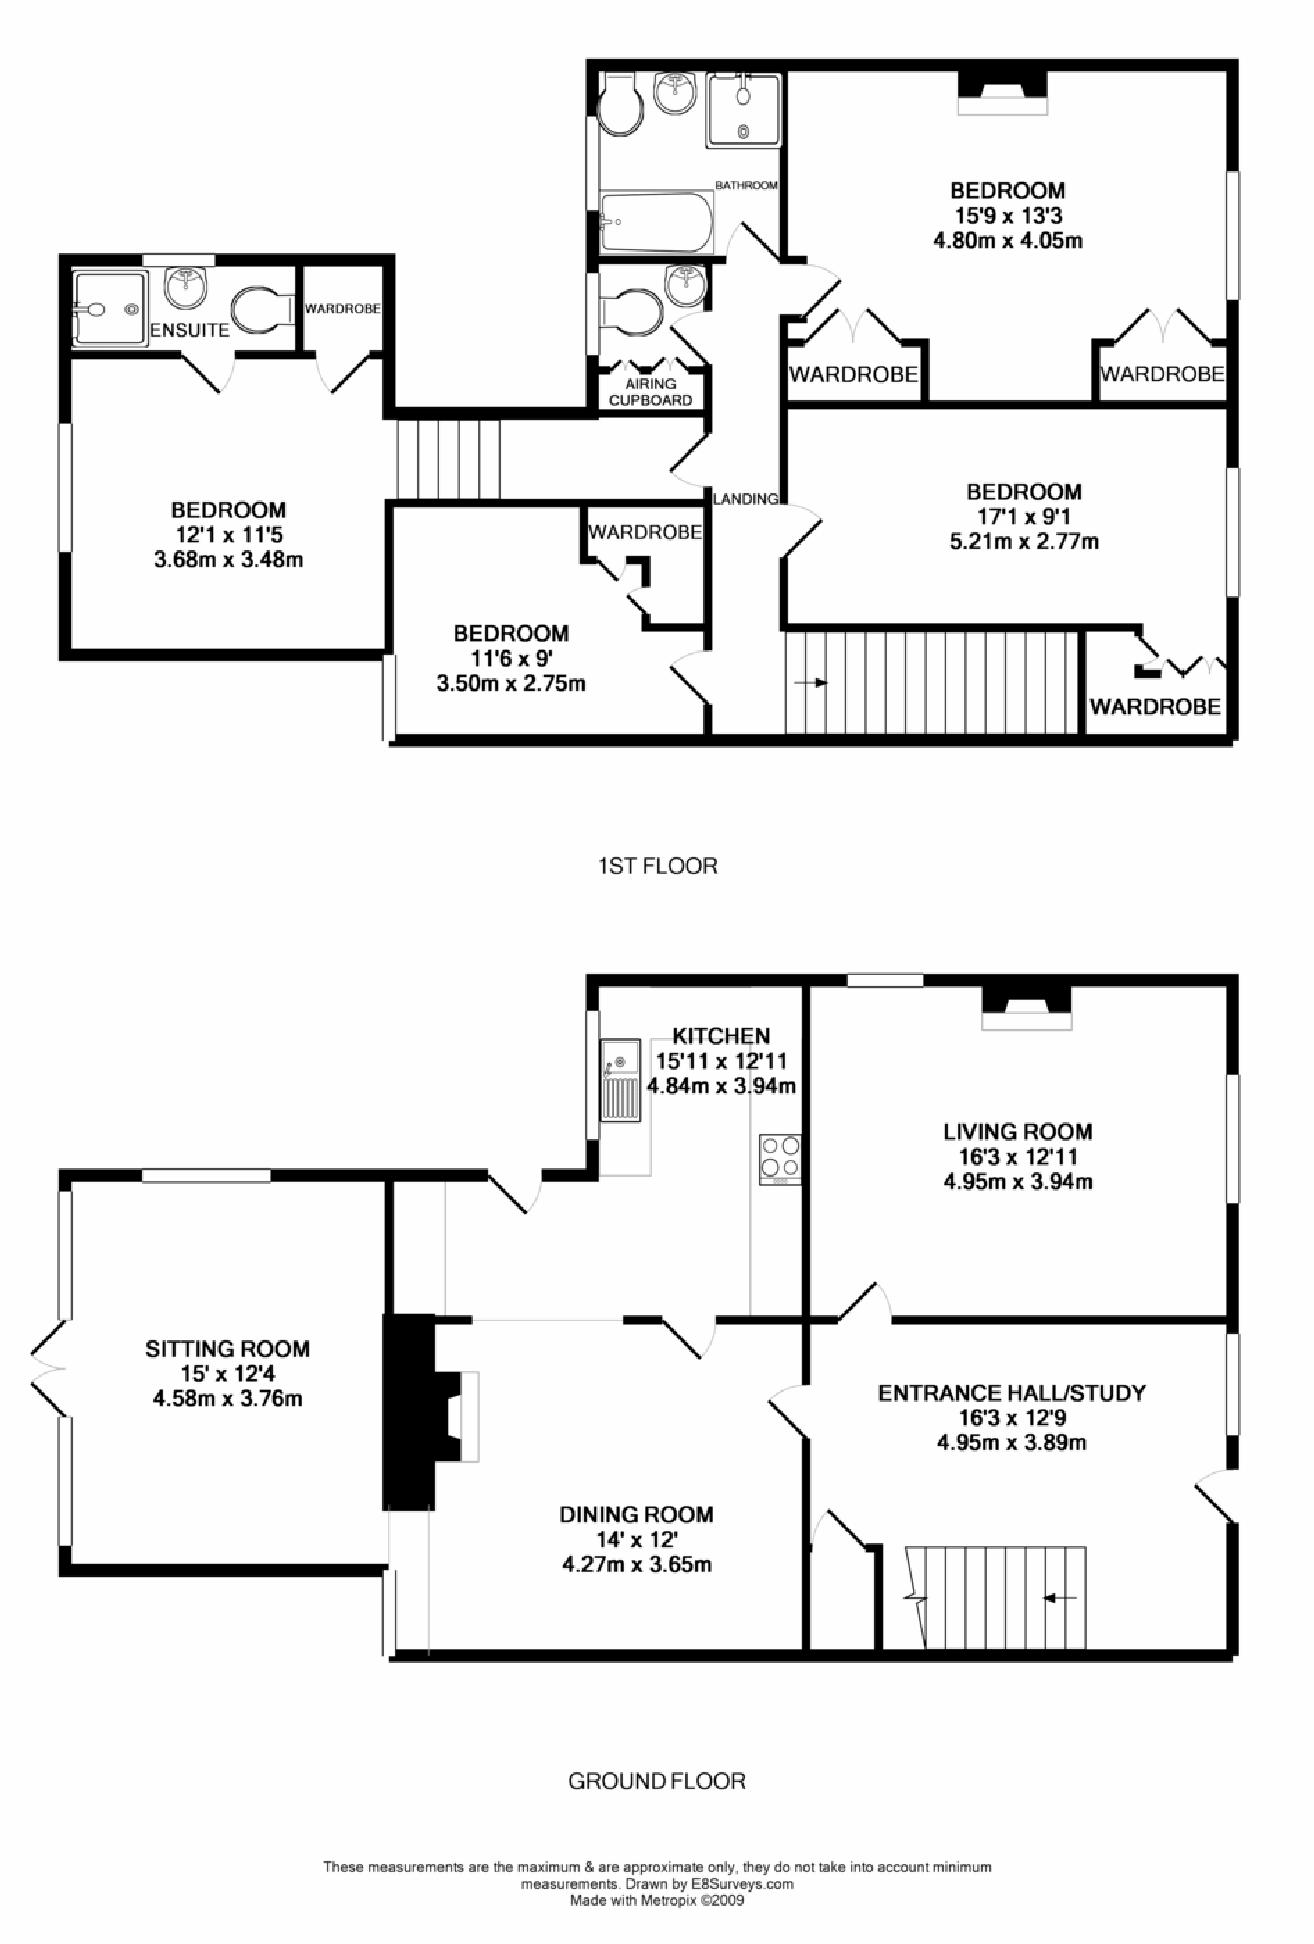 13de9469f8f55ba9 Japanese Style House Plans Japanese Style House Design in addition Stock Illustration Sketch Interior Perspective Bedroom Black White Interior Design Stripes Image77111374 together with Ox5 also Floor Plan Two Bedroom Loft further Plan details. on 1 bedroom cabin floor plans